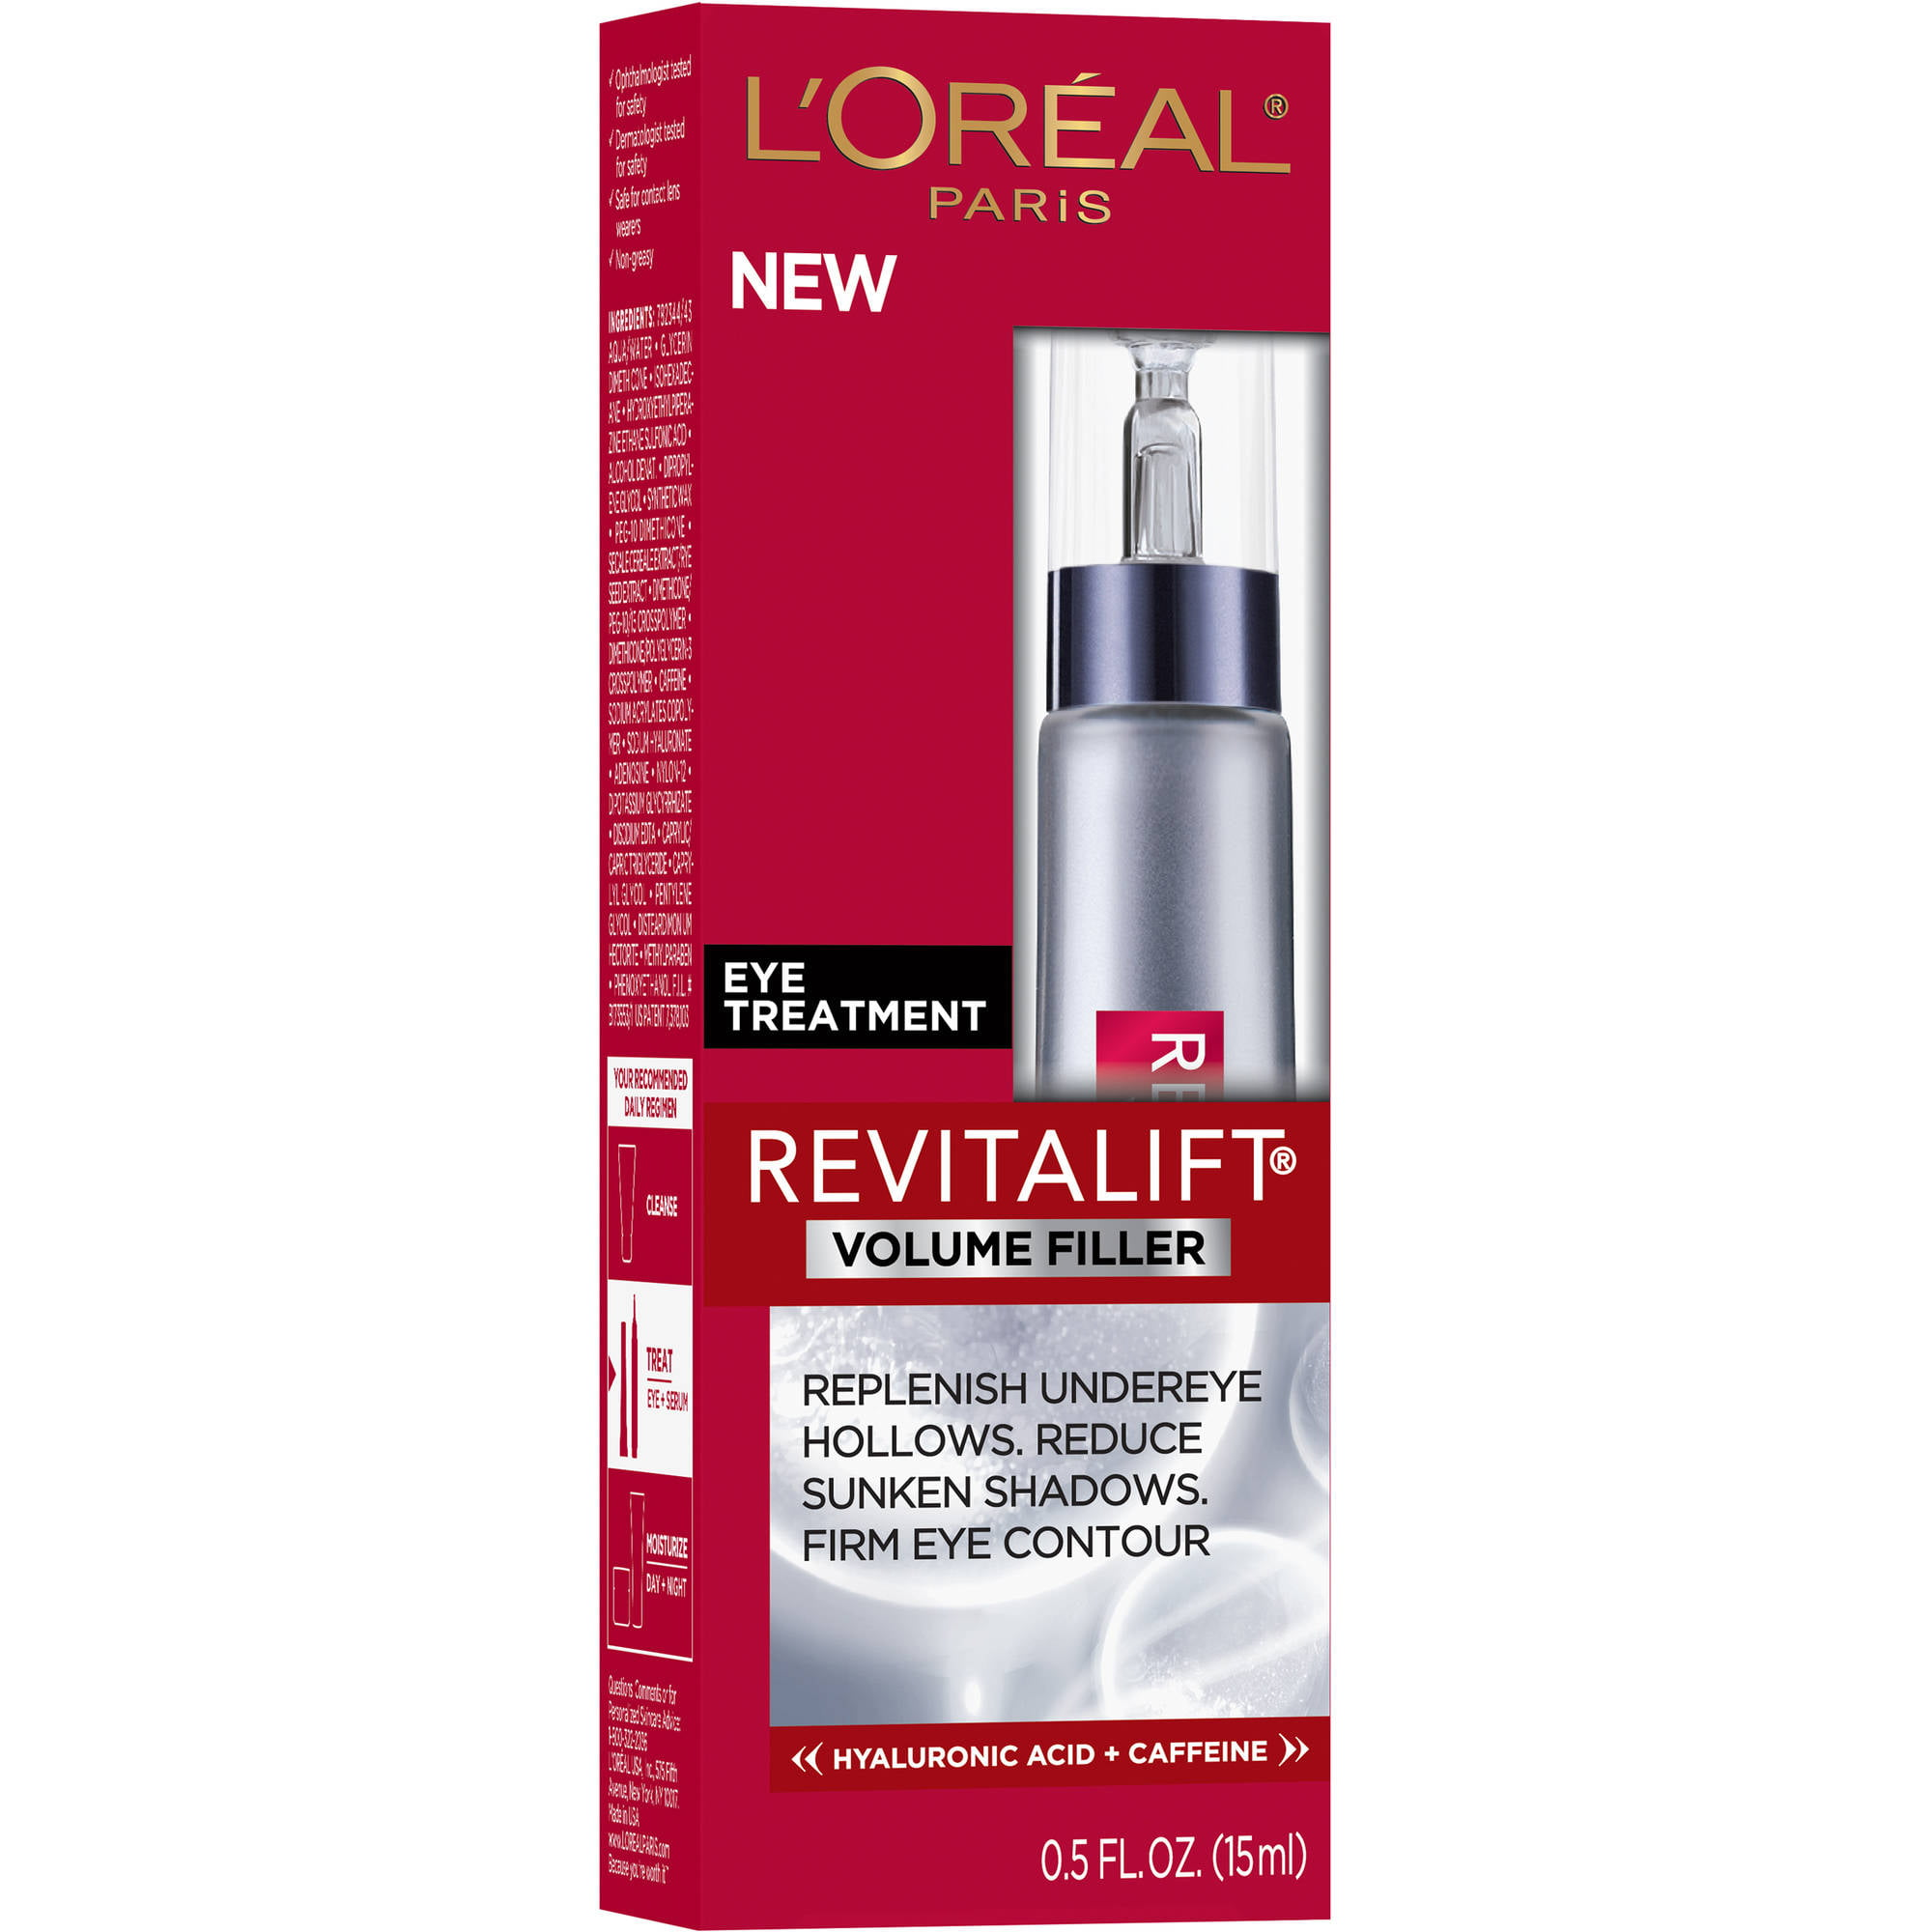 L'Oreal Paris Revitalift Volume Filler Eye Treatment